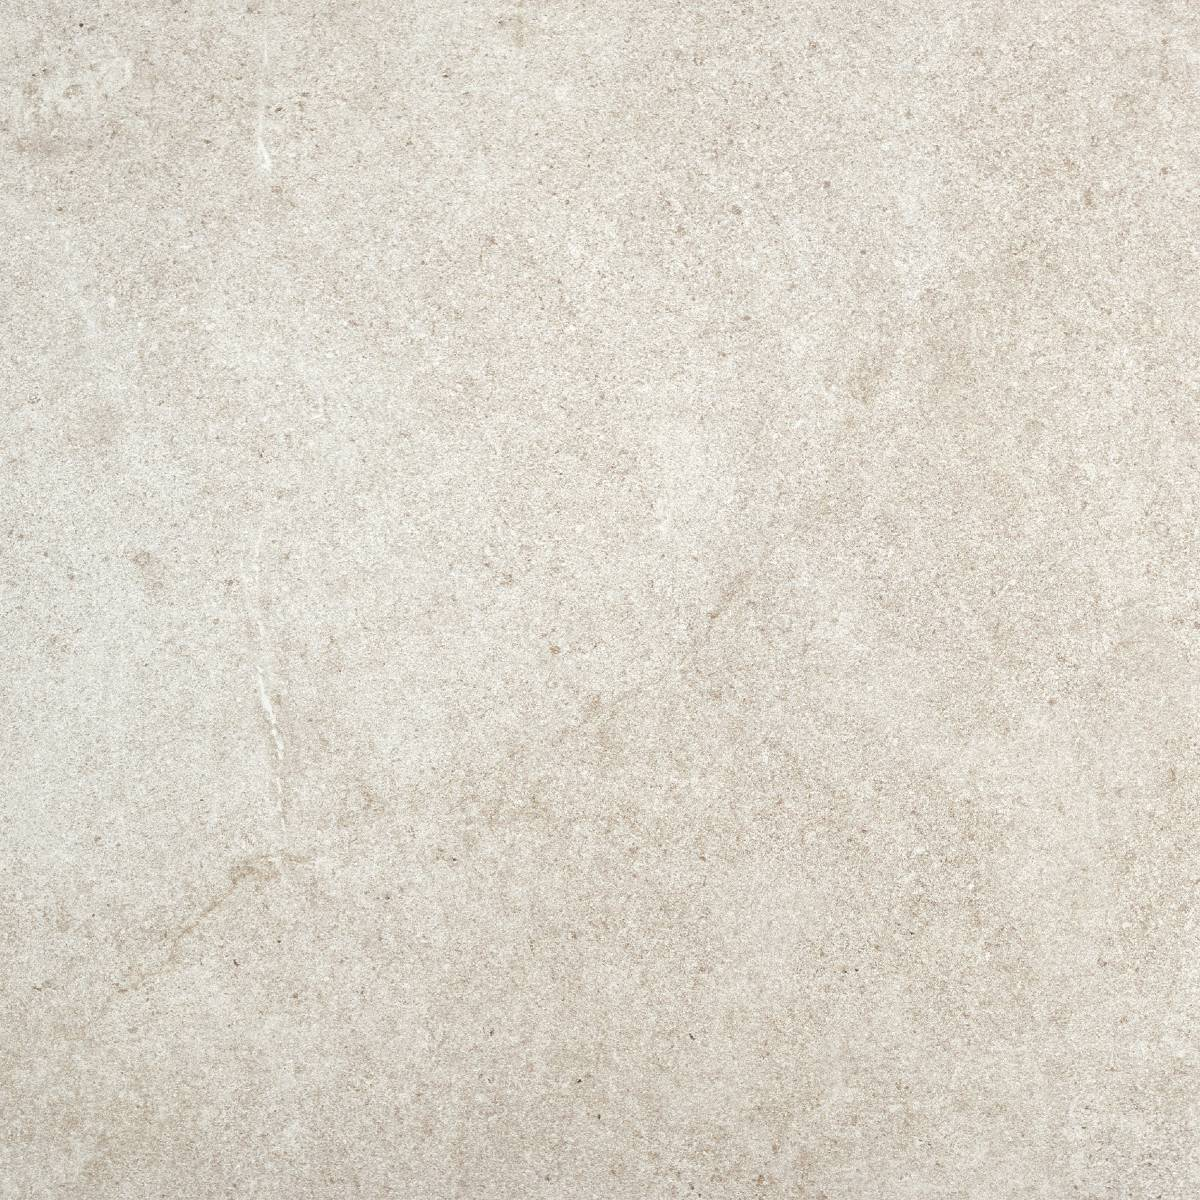 Blenheim Paving Porcelain